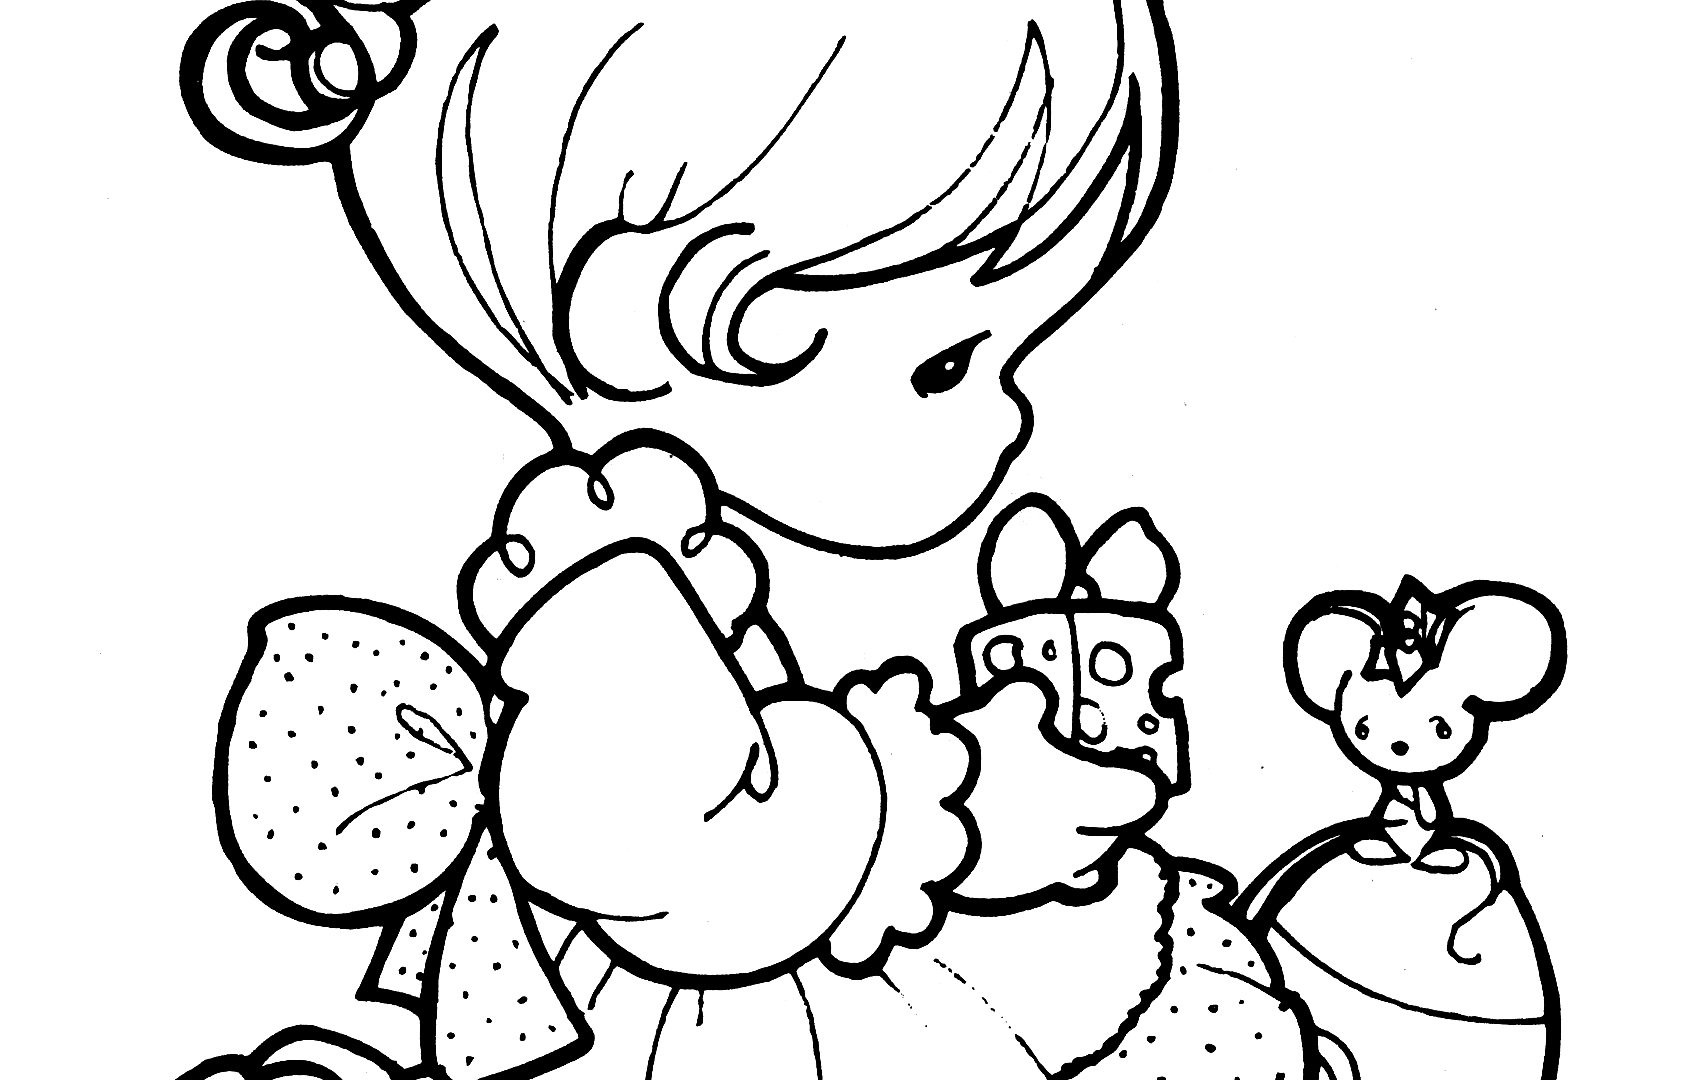 1700x1080 100 precious moments noah s ark coloring pages lovely